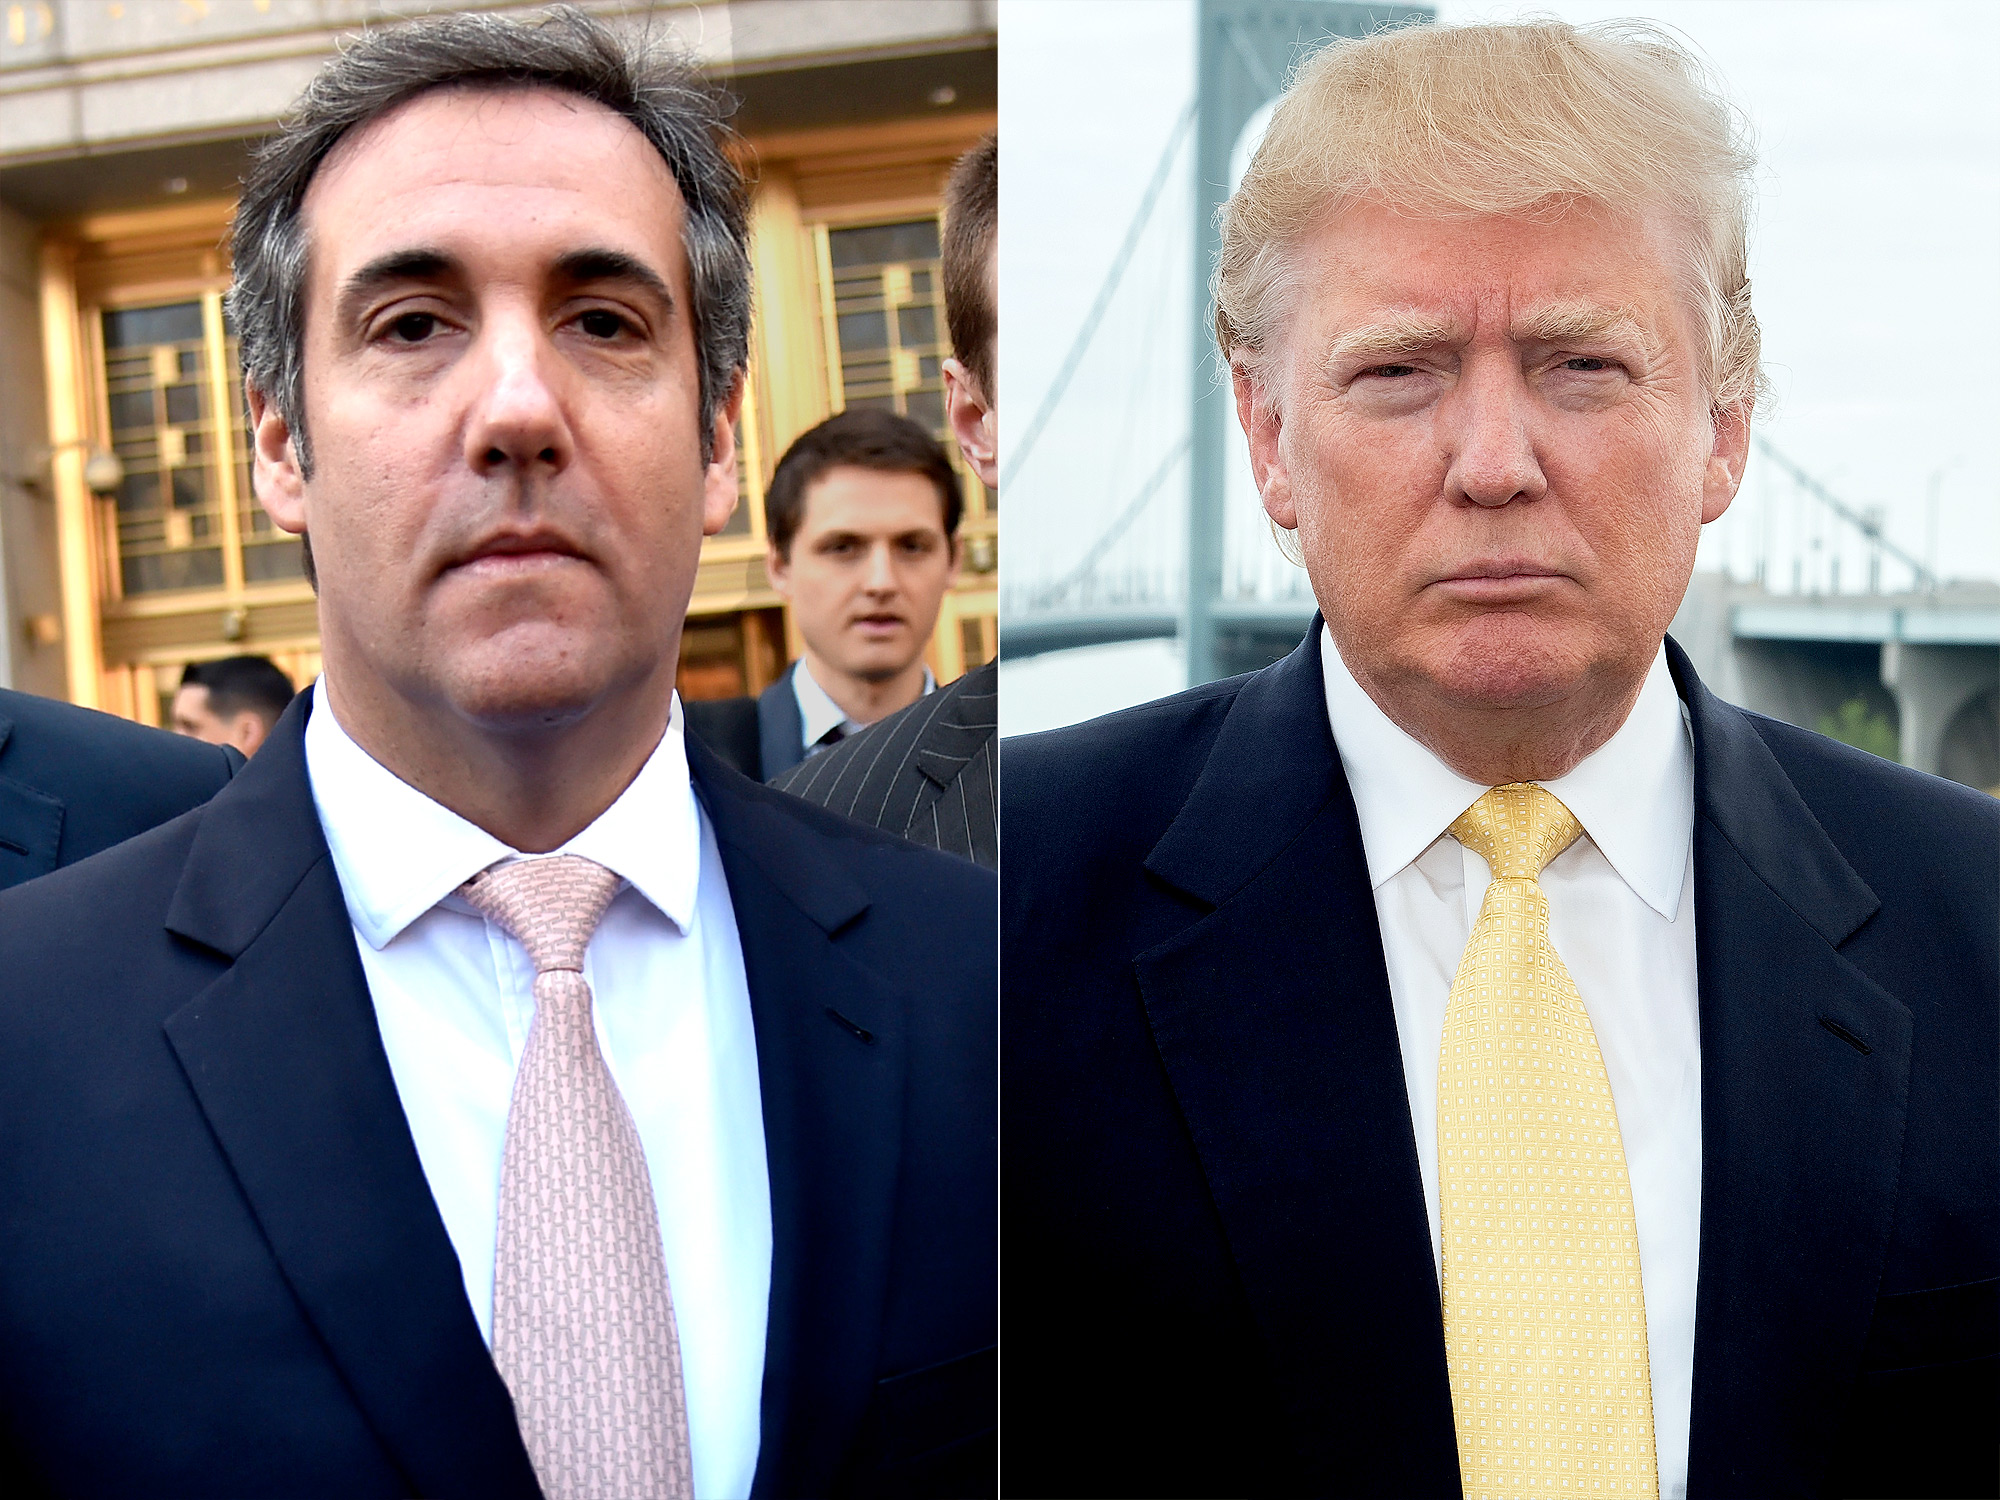 """""""michael-cohen-reveals-donald-trump-told-him-his-voters-would-think-he-was-cool-for-hooking-up-with-an-adult-film-actress"""""""